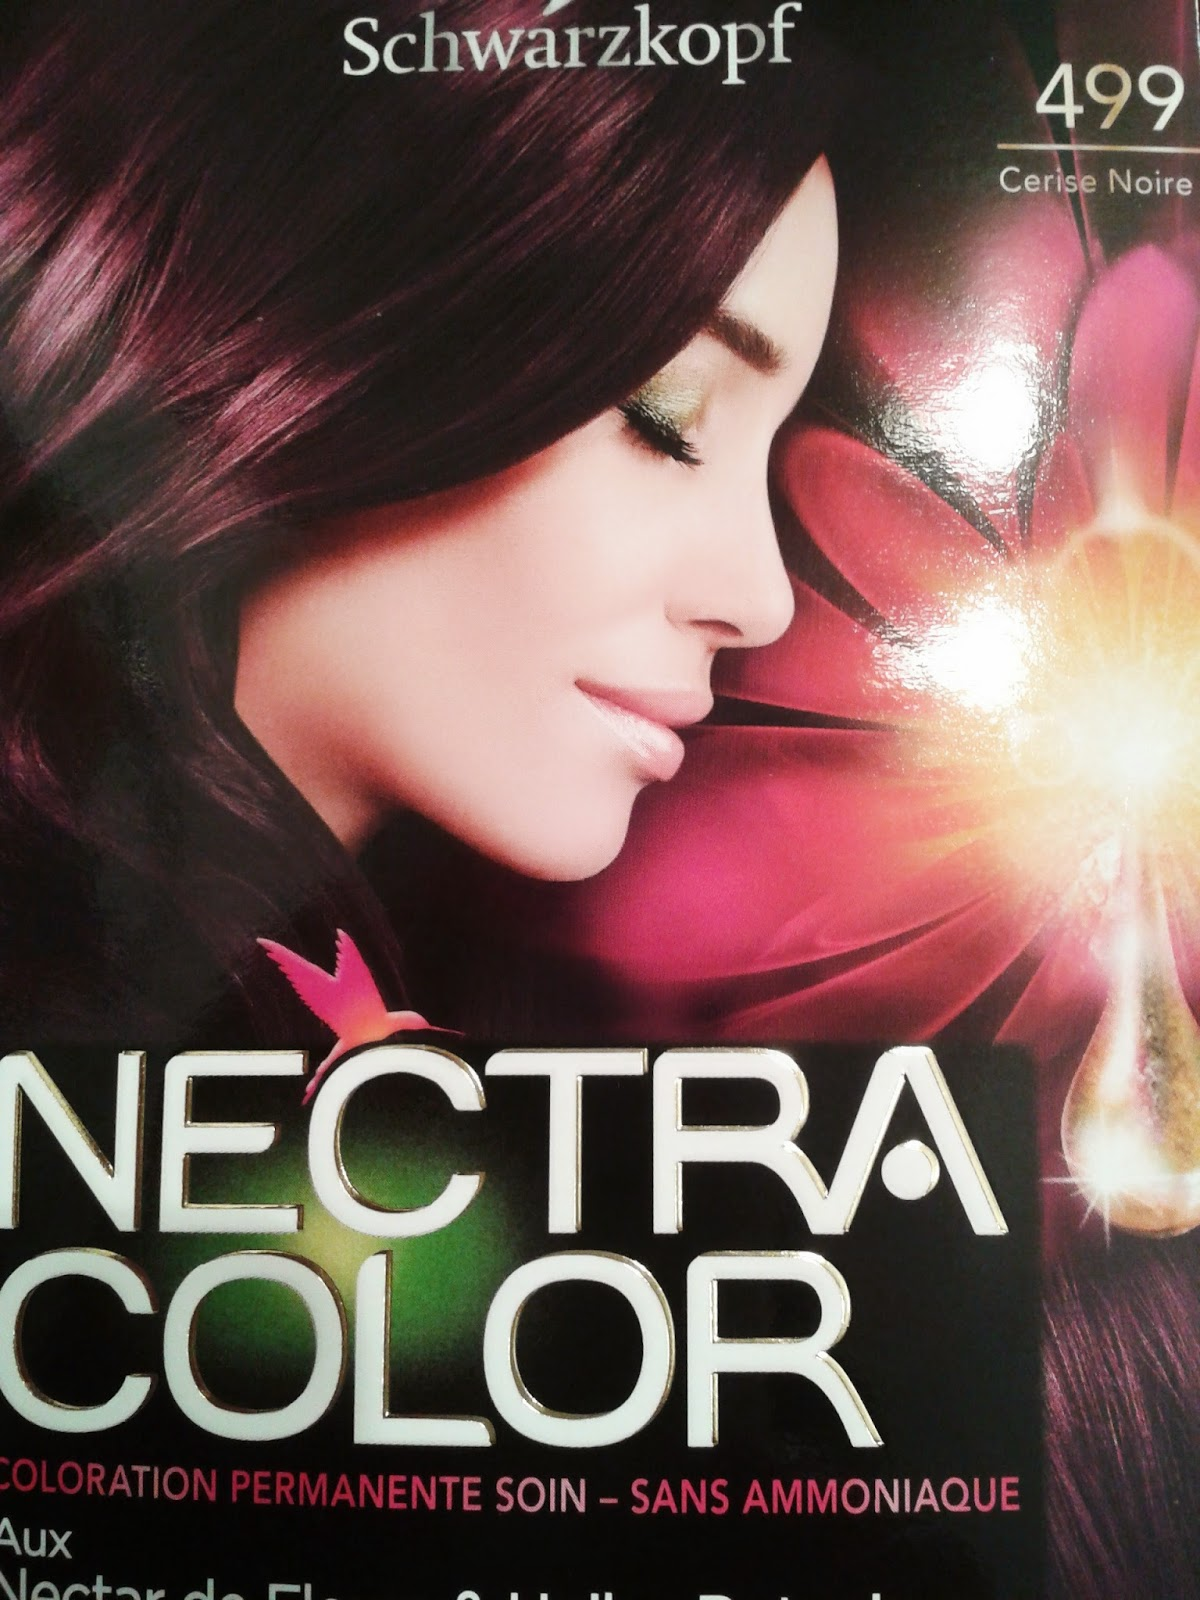 nectra color 499 cerise noire joli packaging - Coloration Noir Cerise